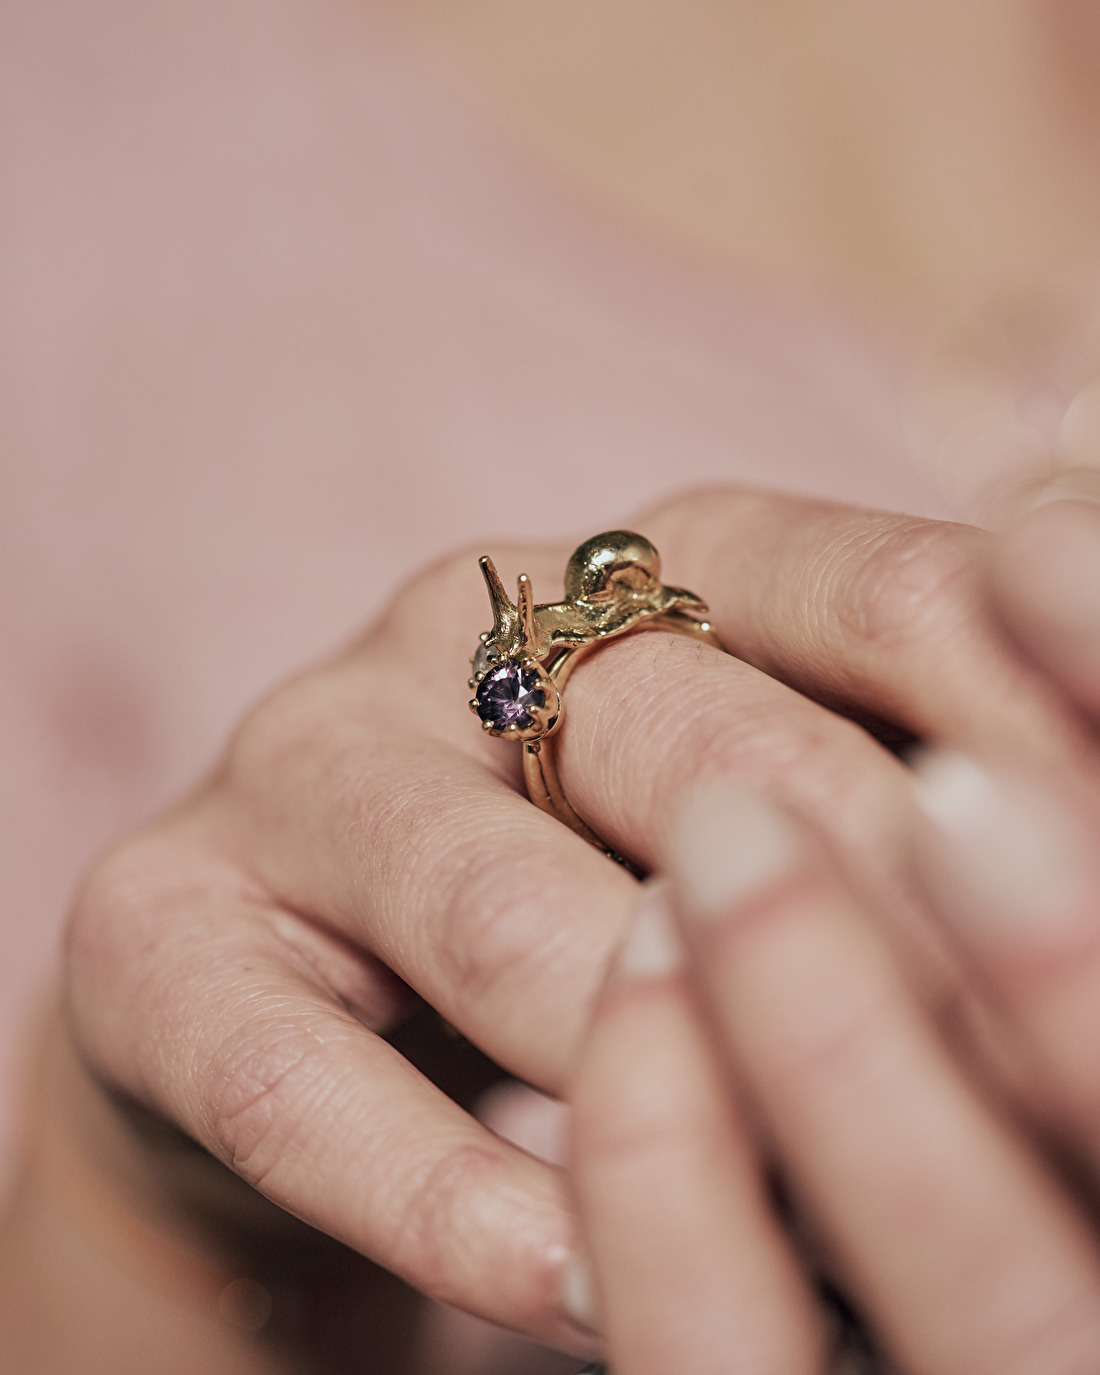 Ring with snail